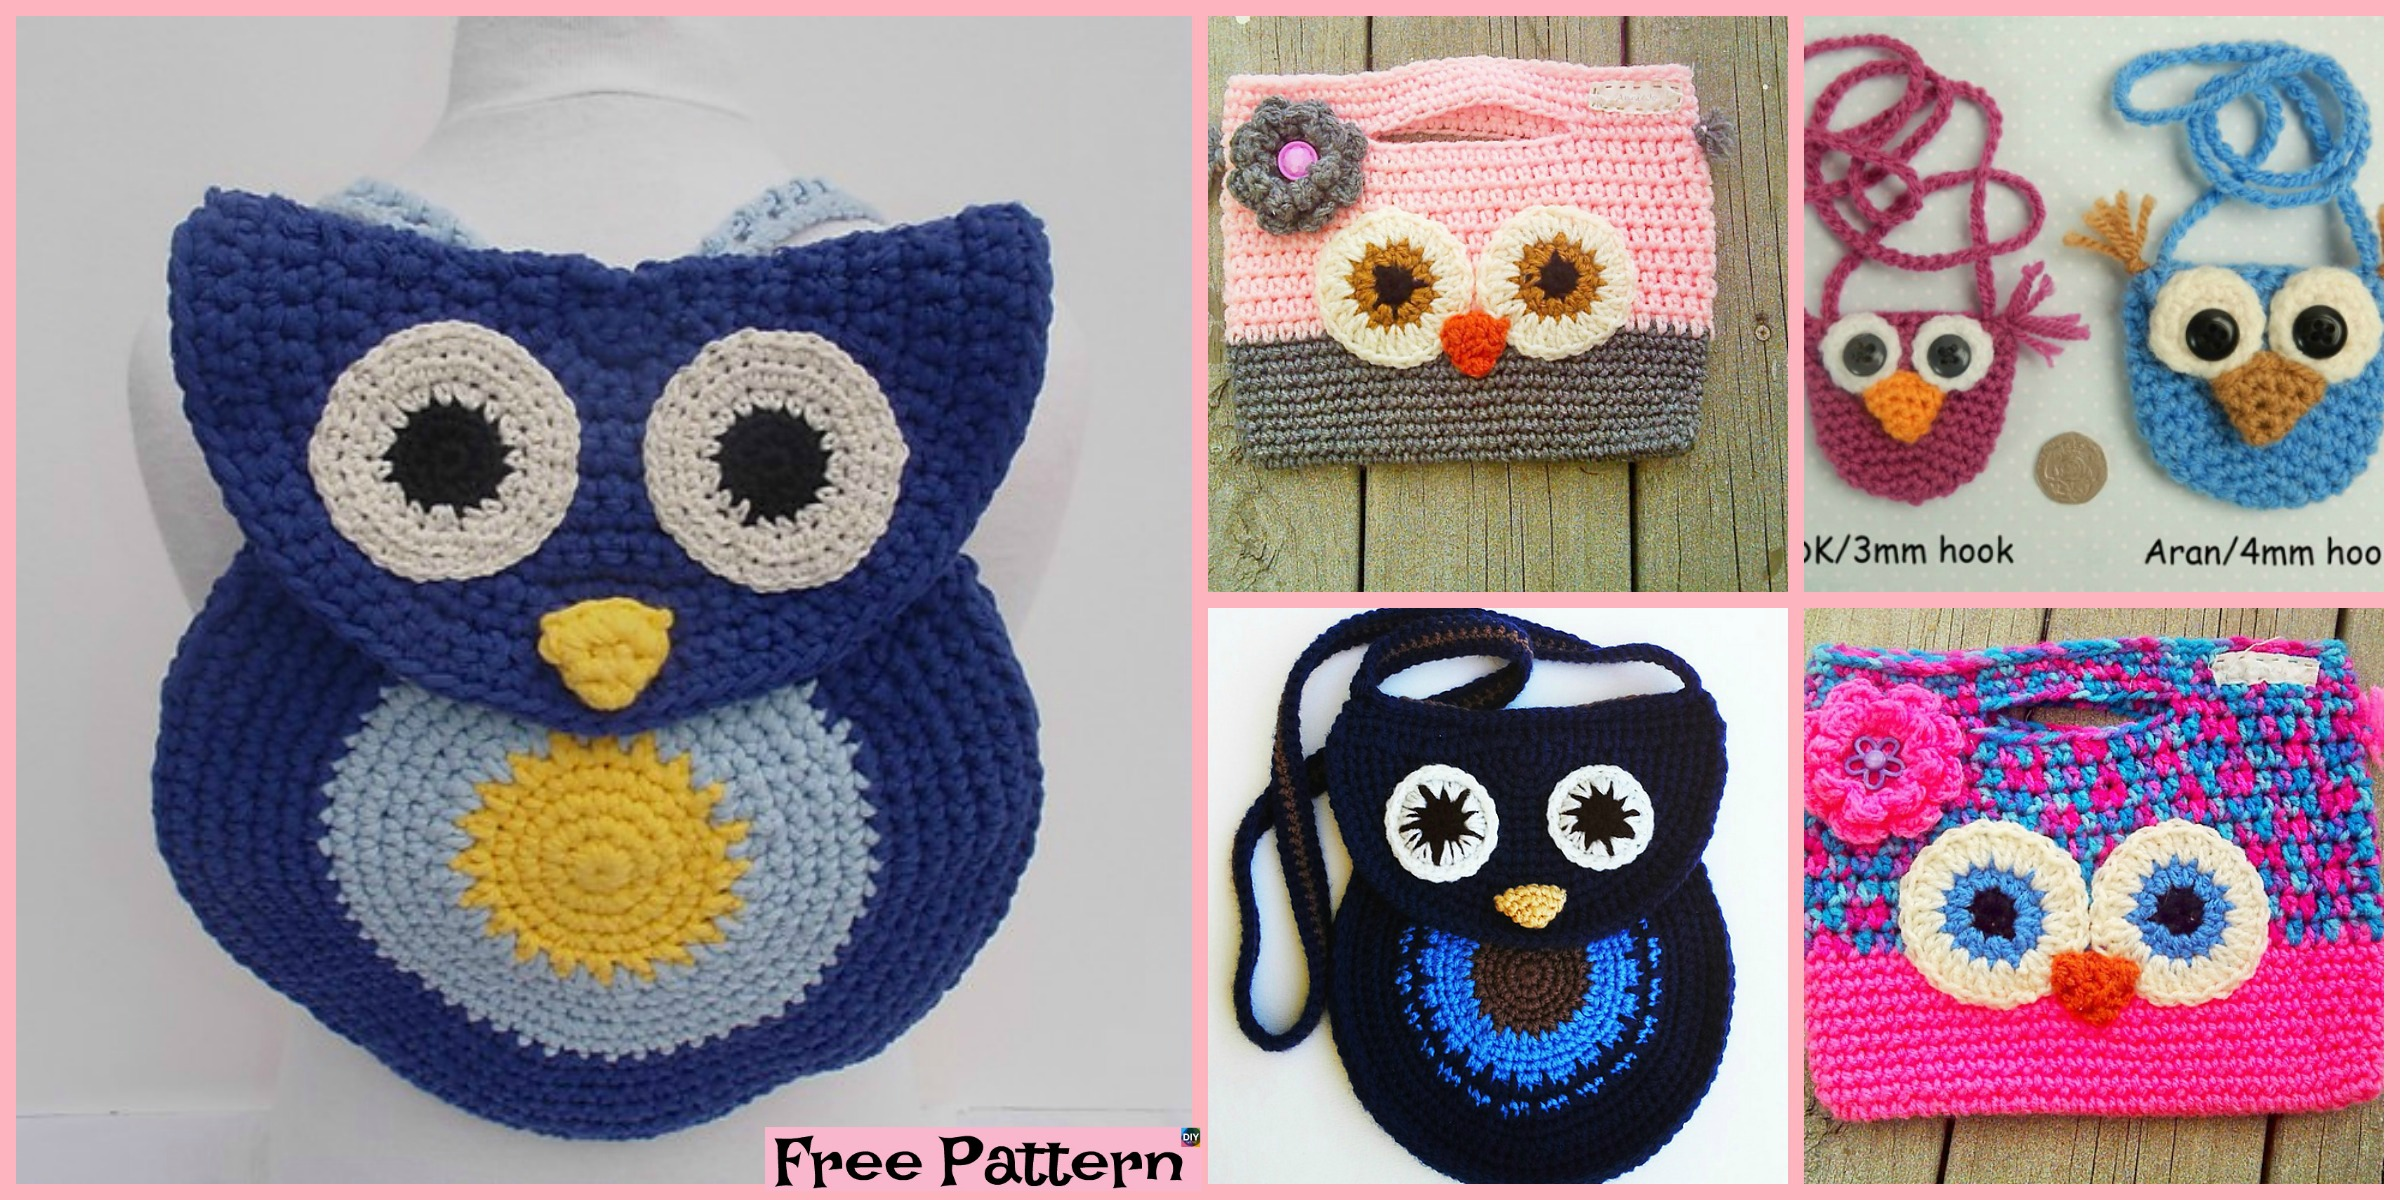 diy4ever Adorable Crochet Owl Bag Free Patterns F - 10 Pretty Crocheted Tote Bags - Free Patterns